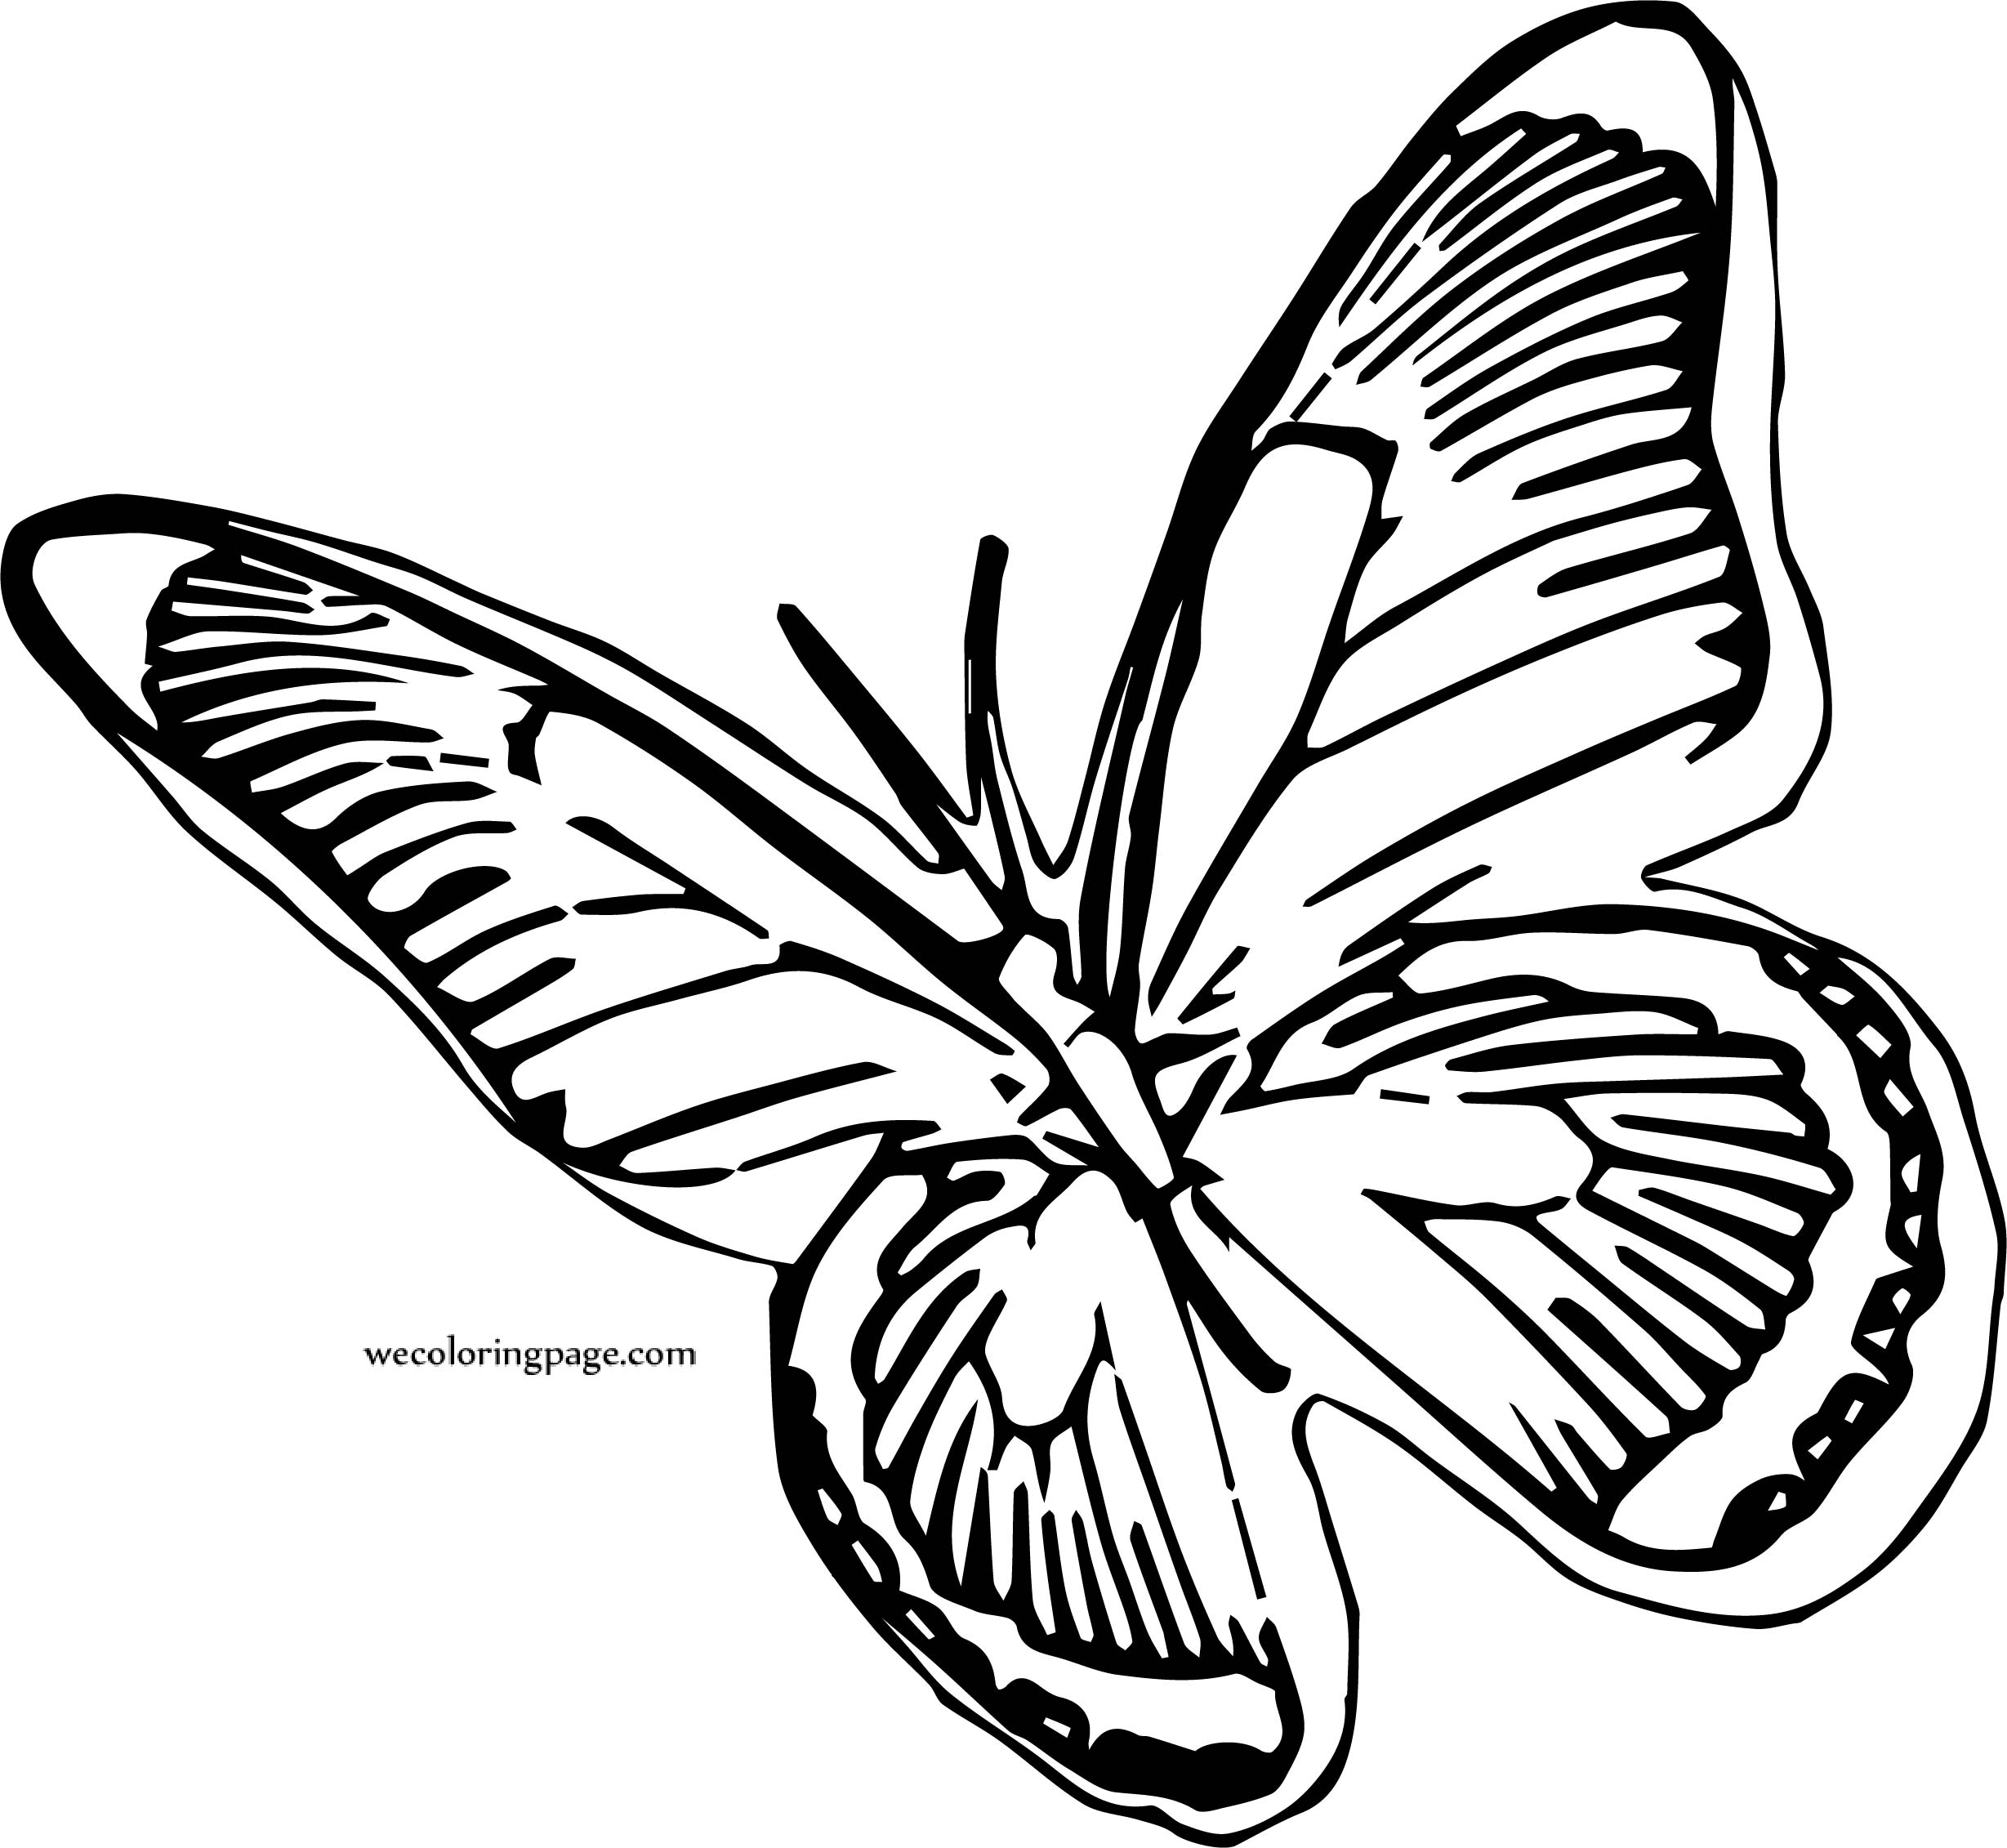 Butterfly Coloring Page Wecoloringpage 218